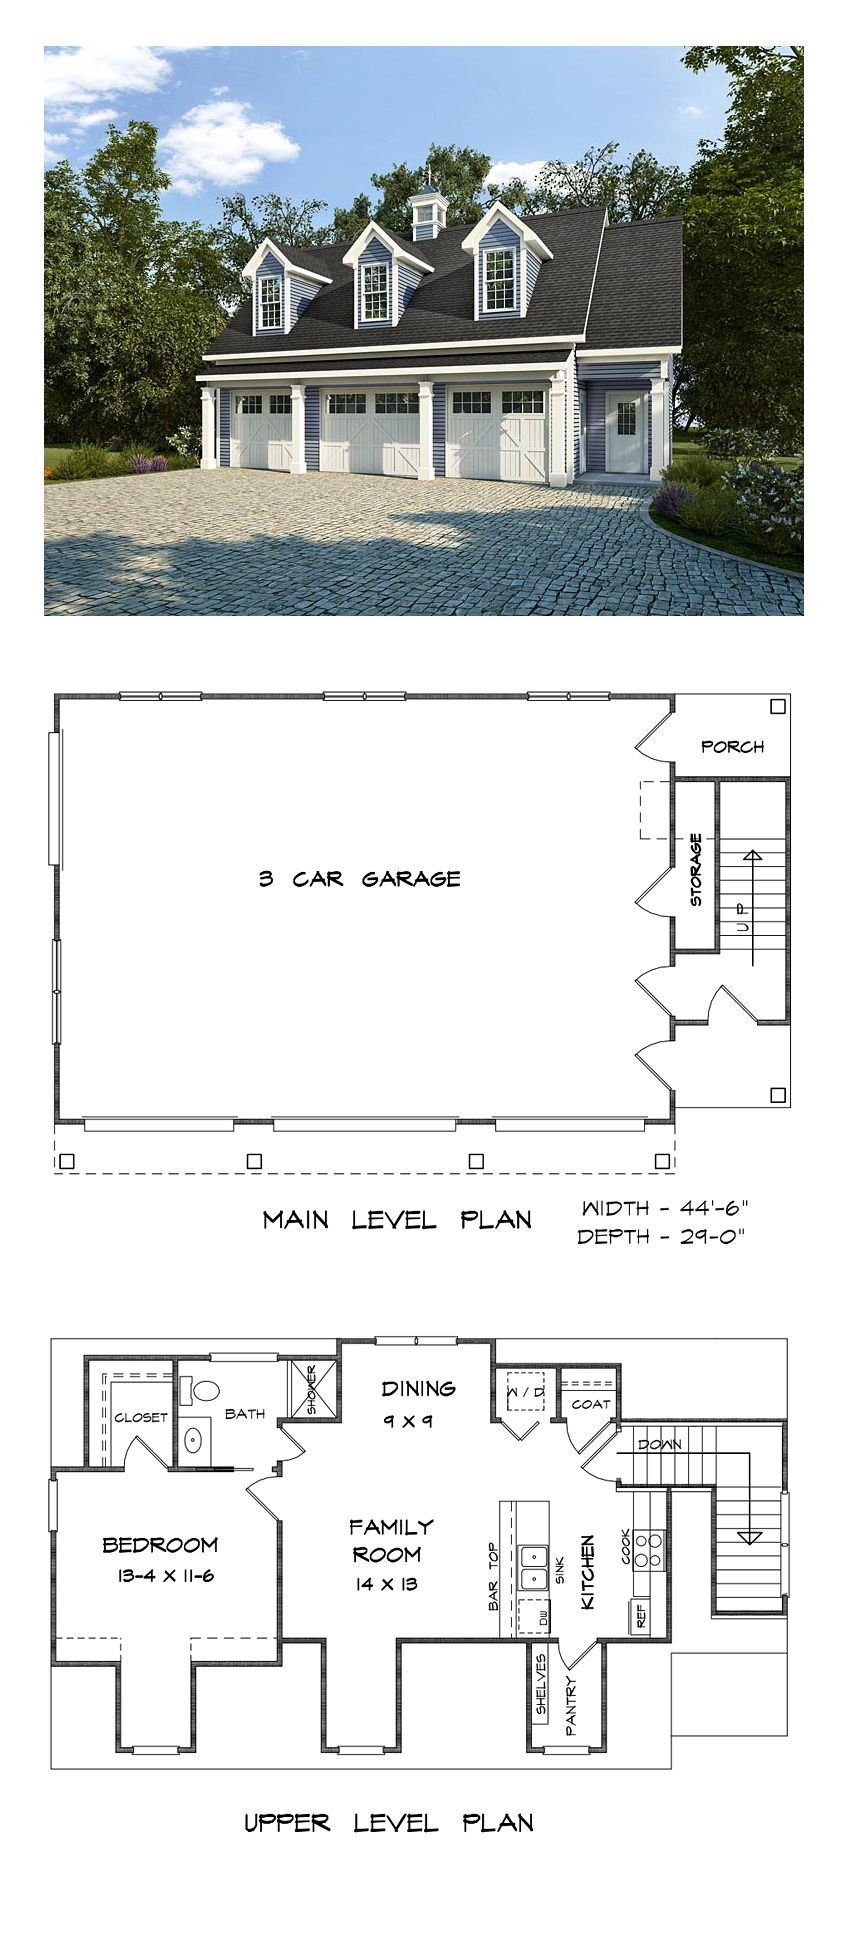 Garage Plan 58248 Pinterest Apartment Plans. Garage Apartment Plans 1  Bedroom ...